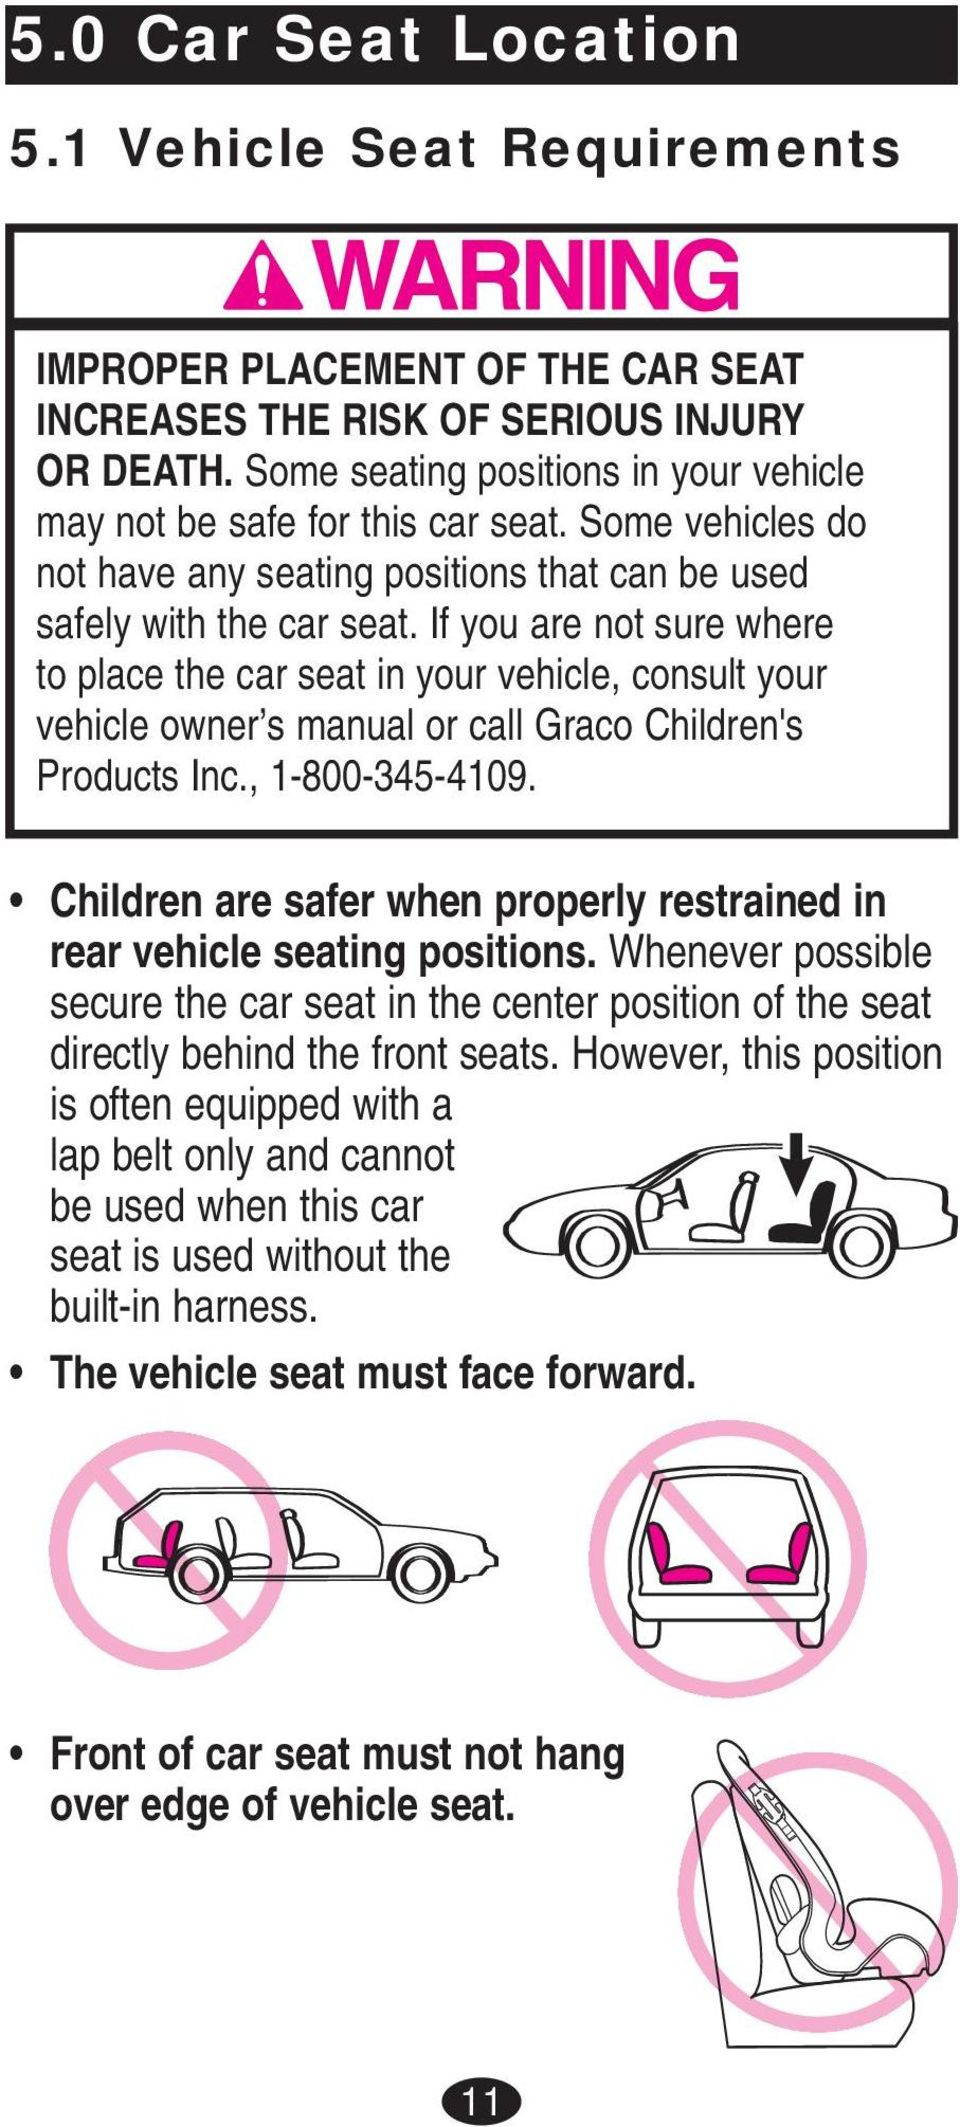 If you are not sure where to place the car seat in your vehicle, consult your vehicle owner s manual or call Graco Children's Products Inc., 1-800-345-4109.